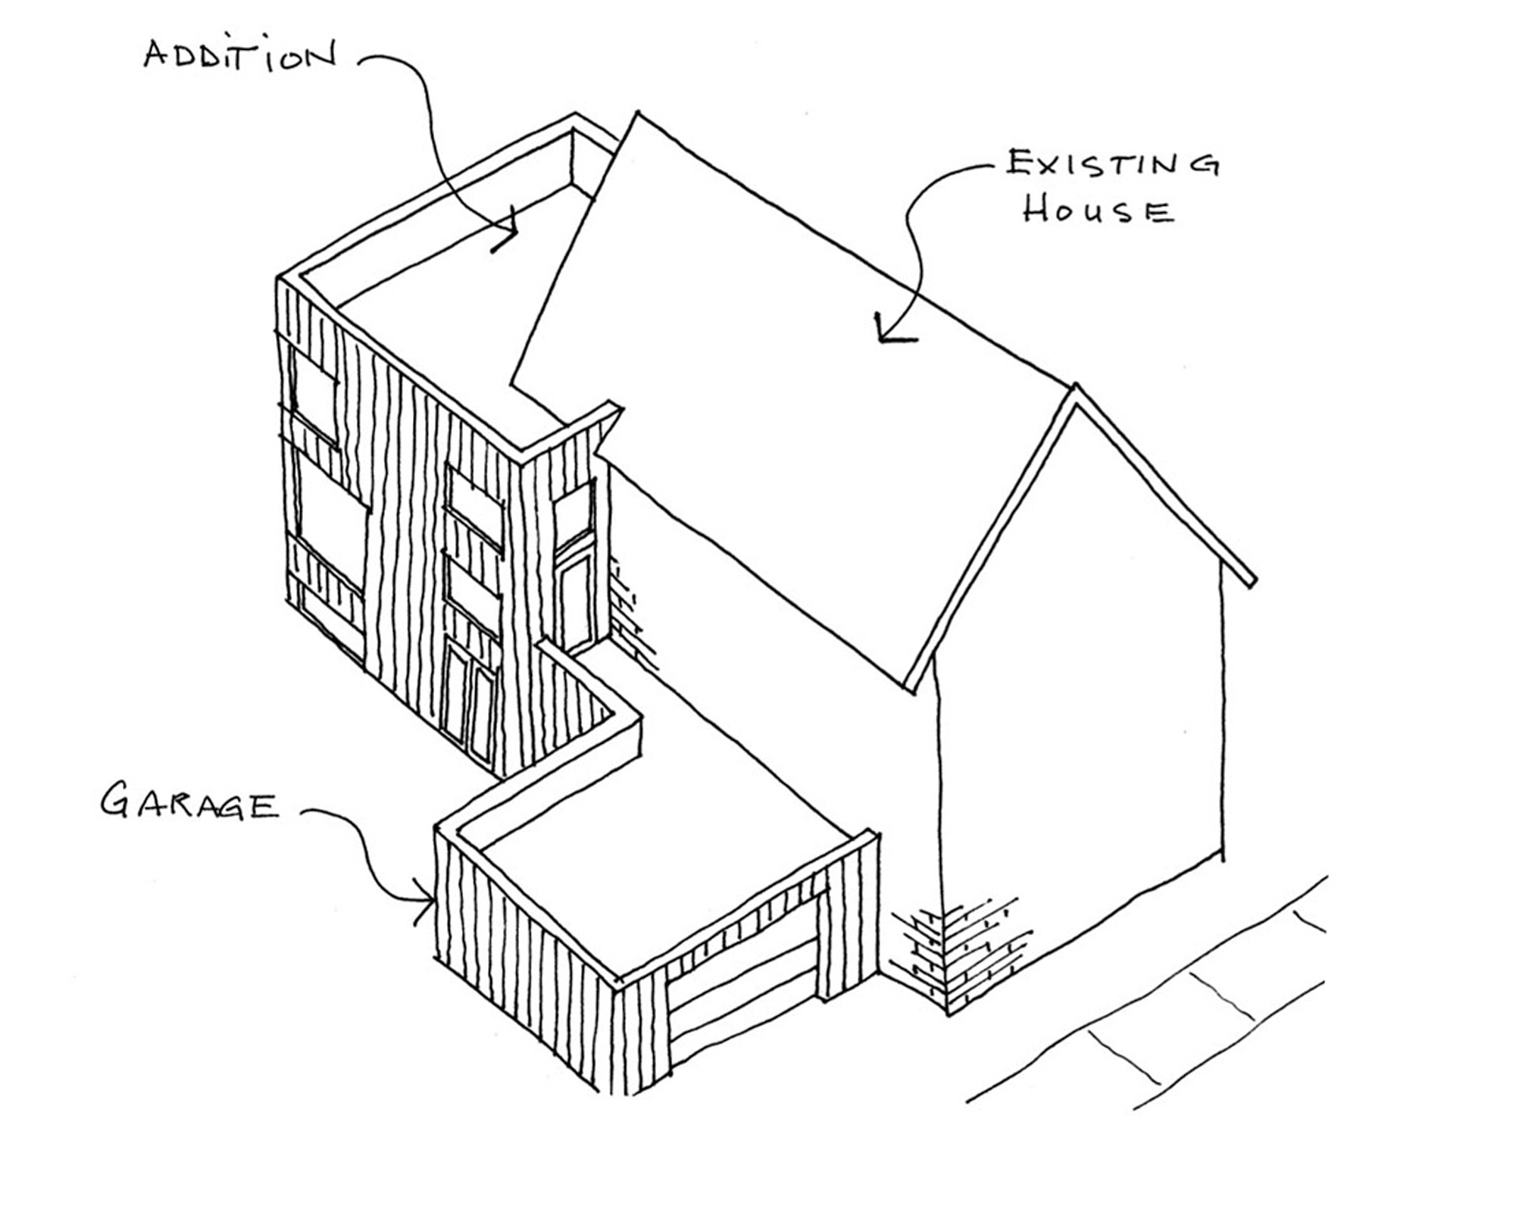 wc-studio-Chicago-custom-house-addition-garage-sketch.jpg